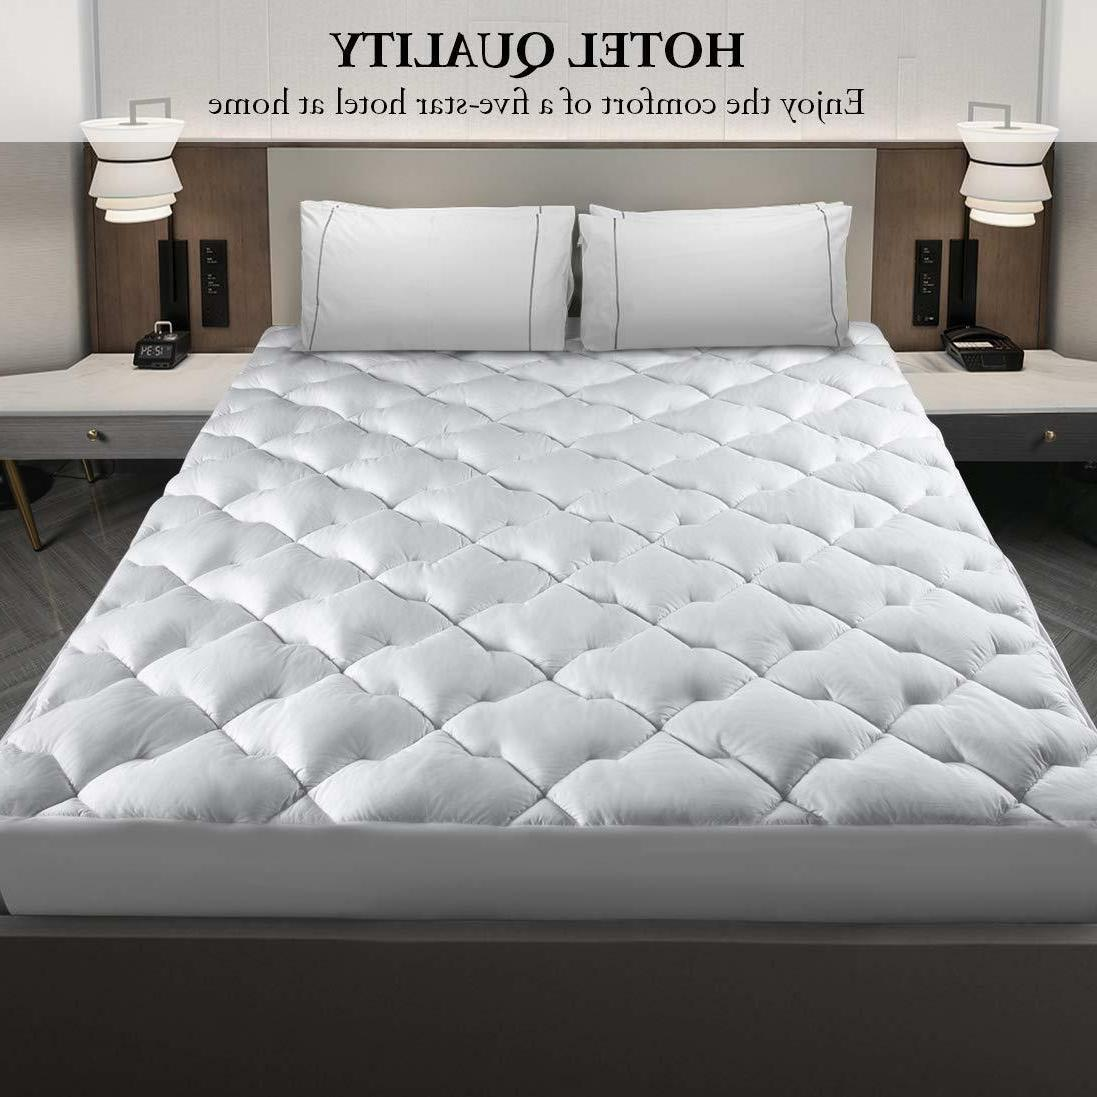 Cooling Cool Mattress Pad Cover Topper King Size Sleeping Co